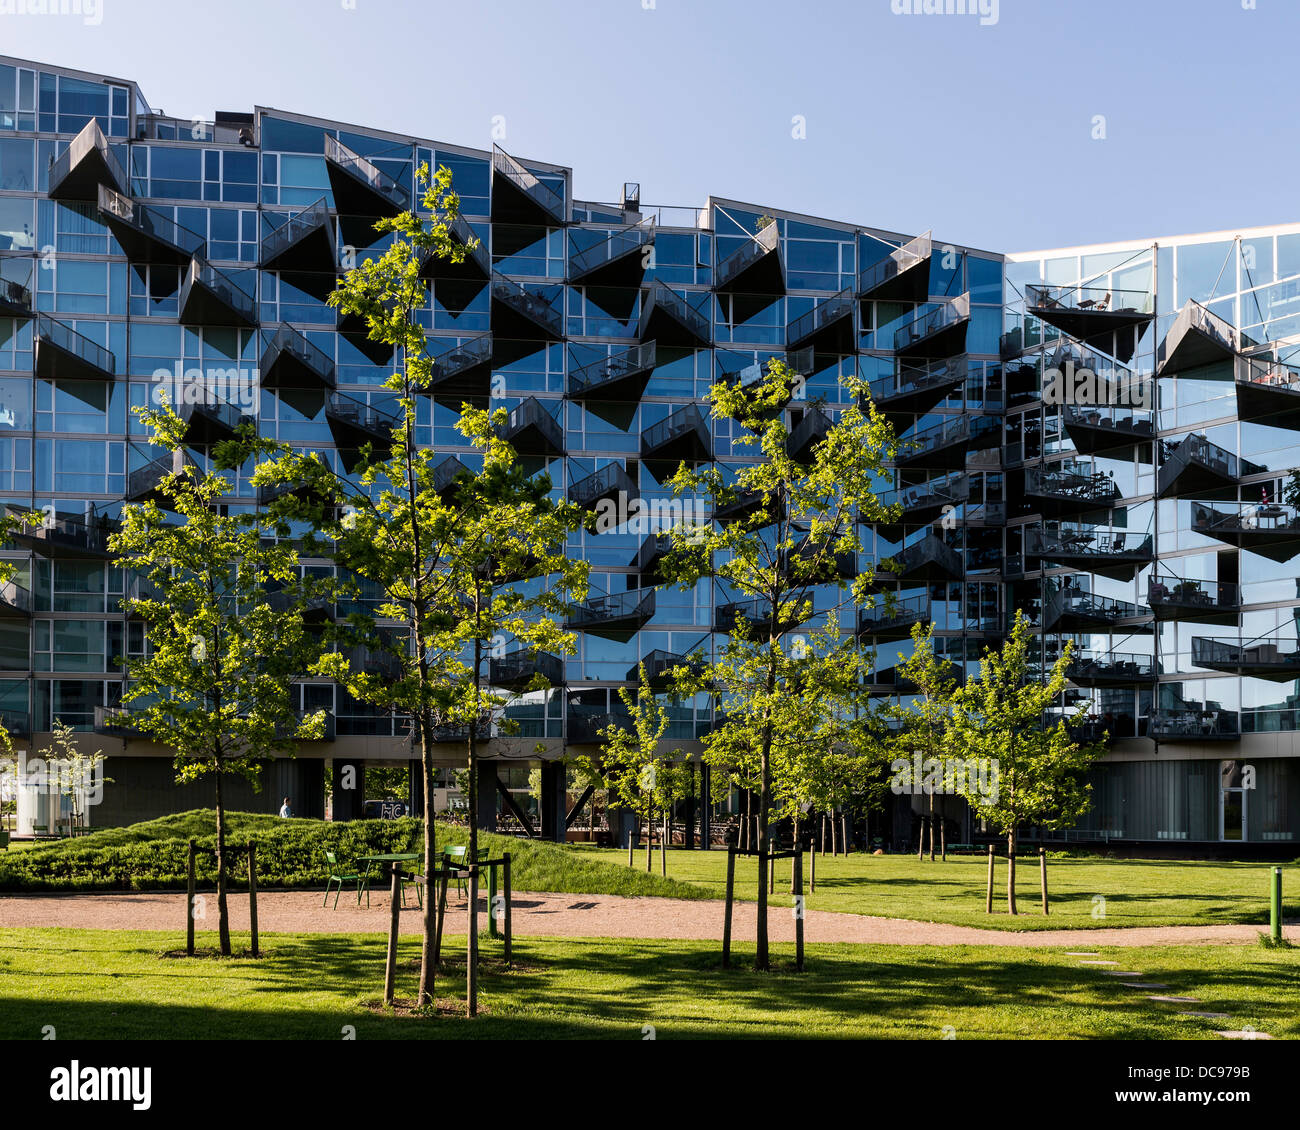 VM Houses, Copenhagen, Denmark. Architect: PLOT, 2013. View of building with trees and grass in foreground. Stock Photo